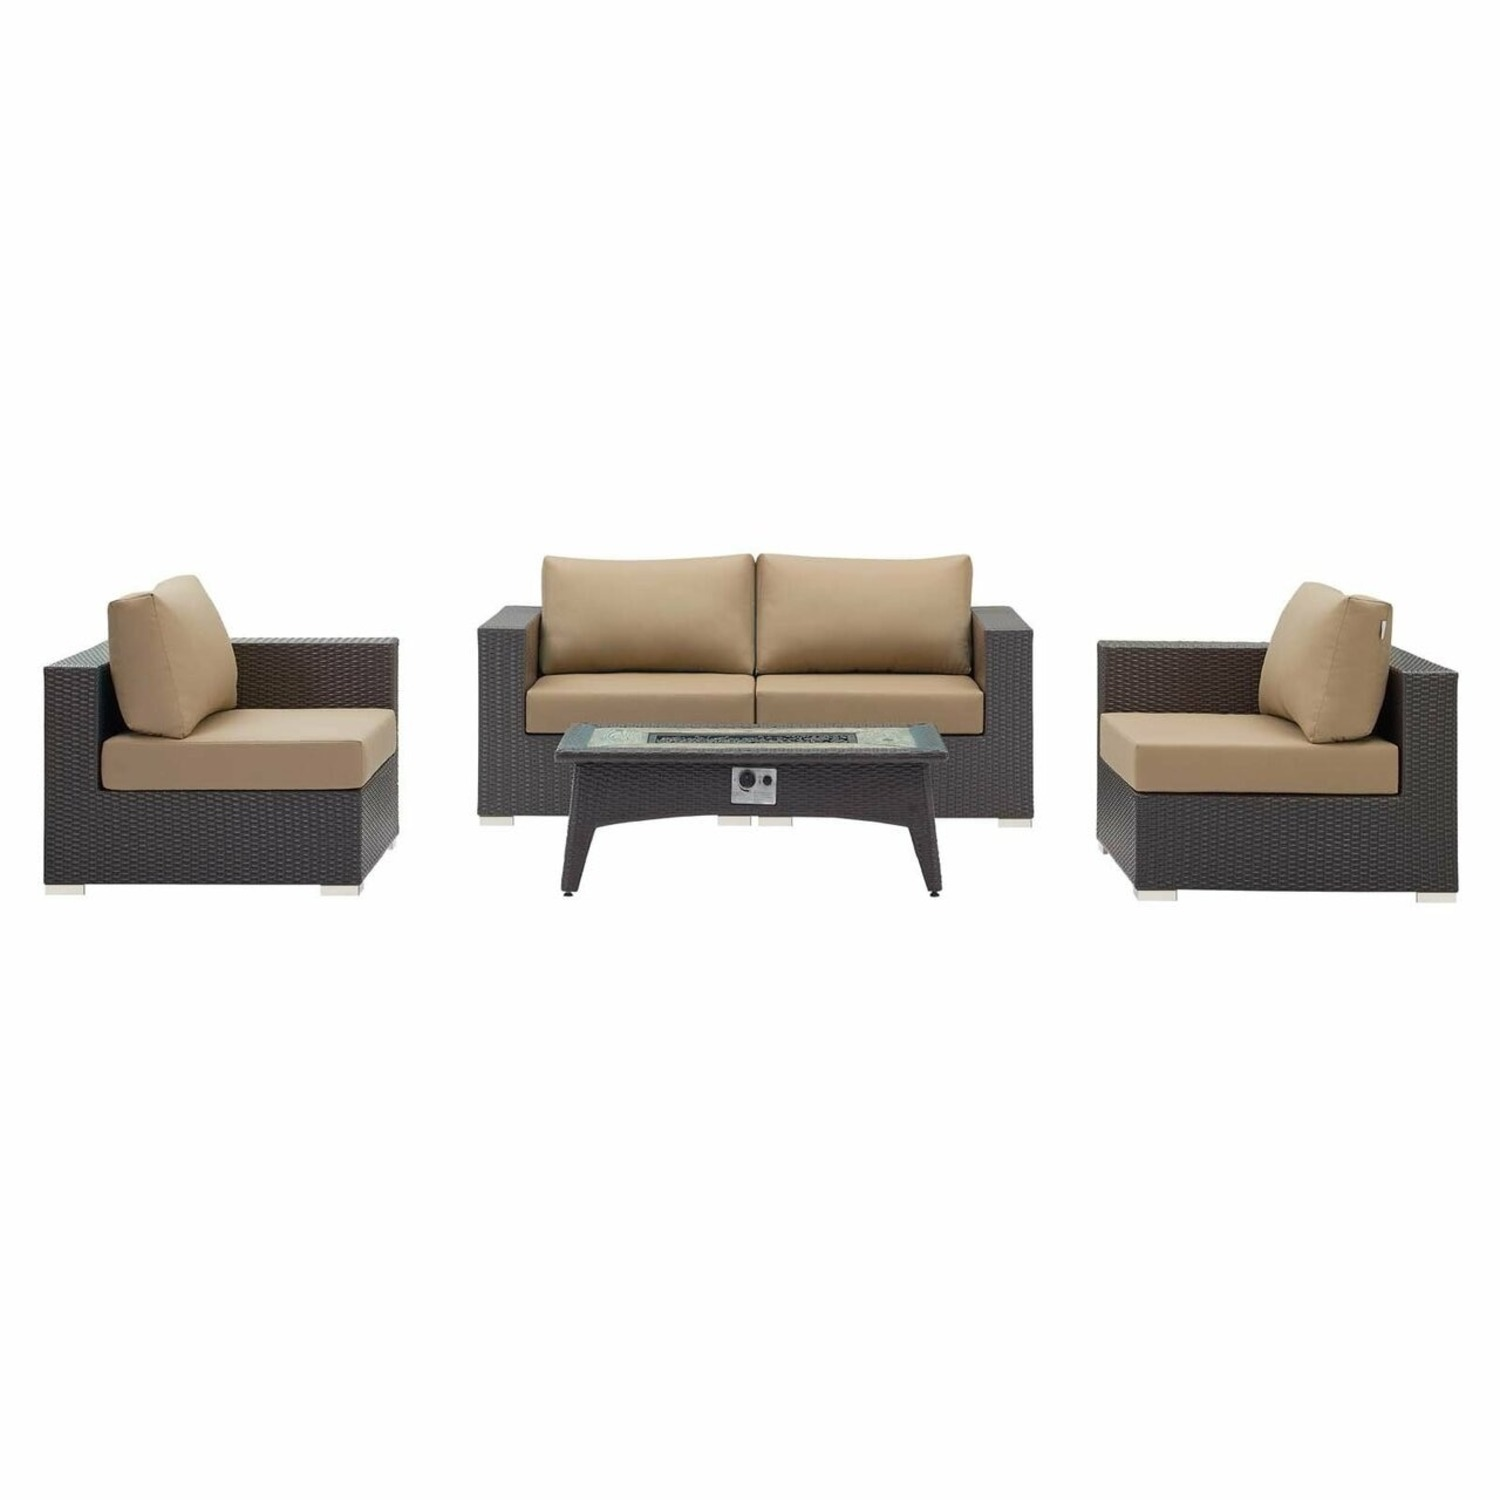 5-Piece Outdoor Sectional In Mocha Fabric Finish - image-0